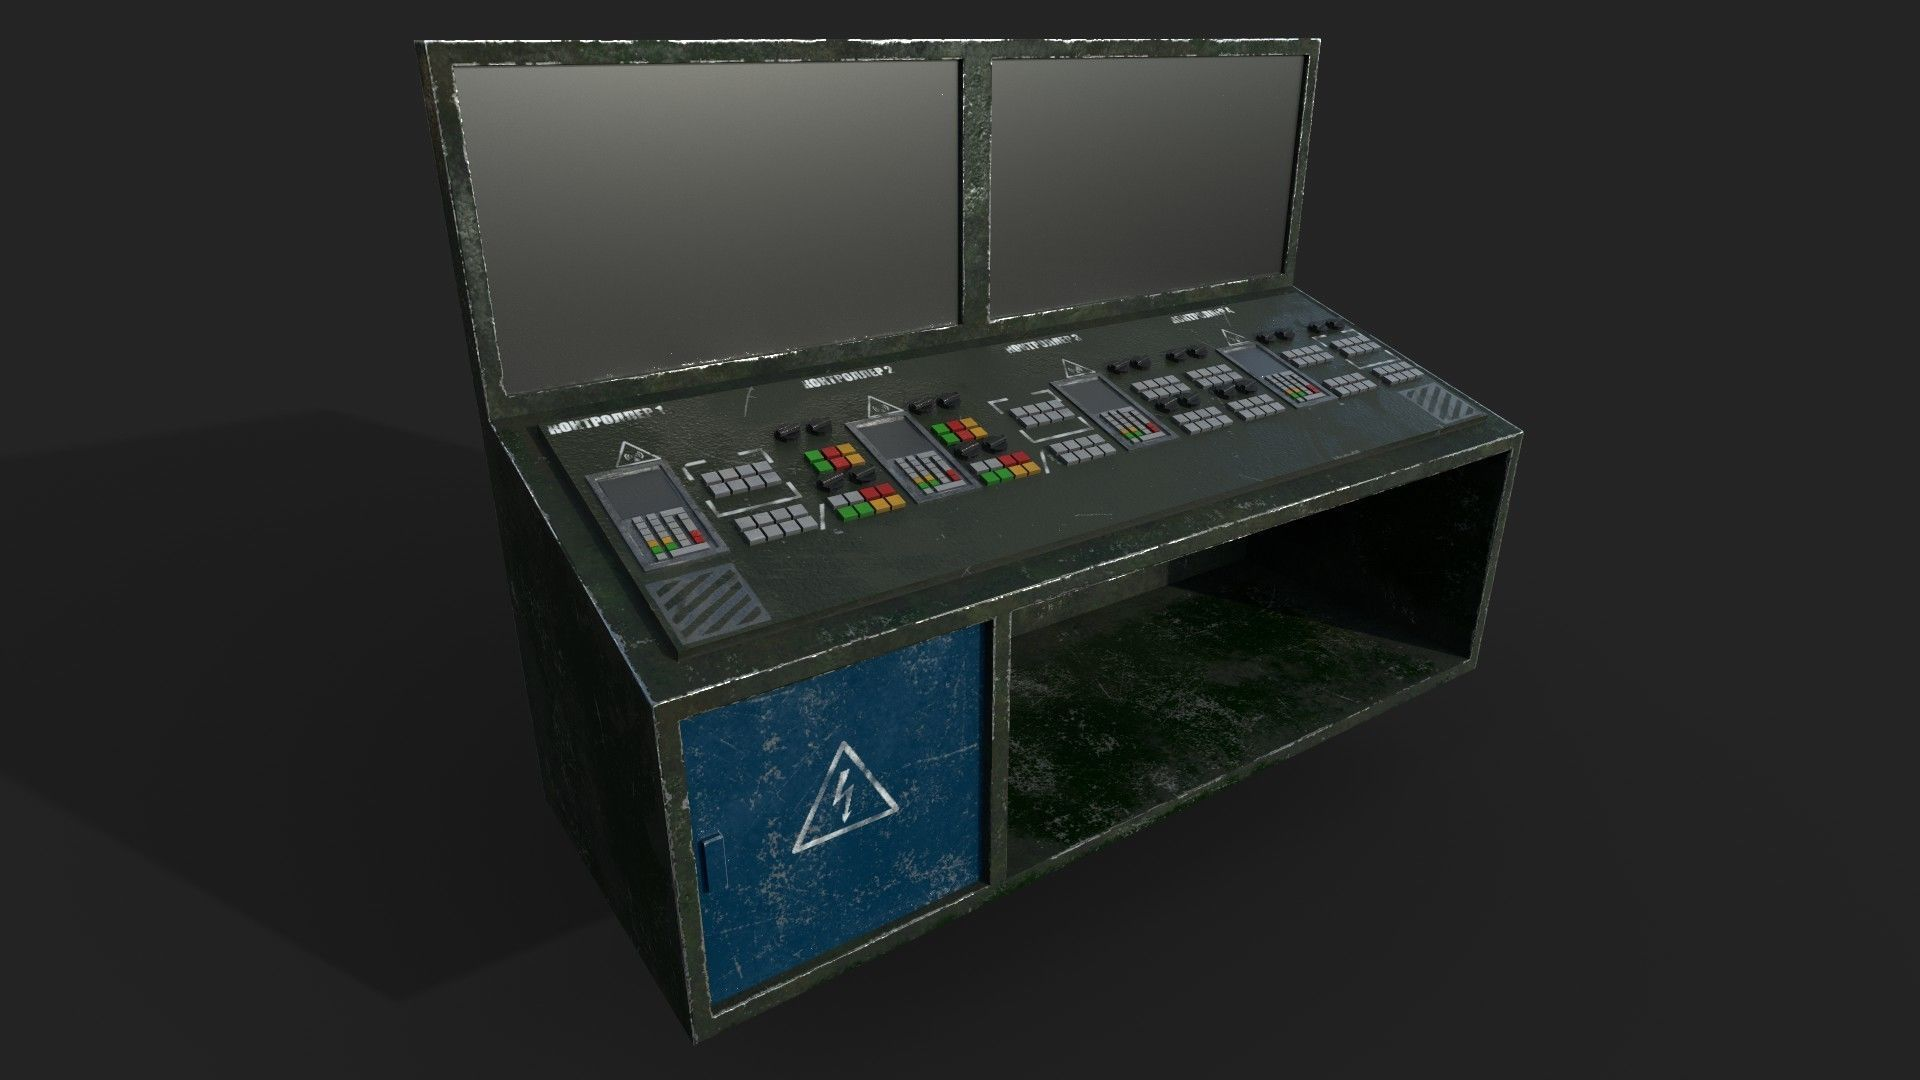 Control Panel with Monitor